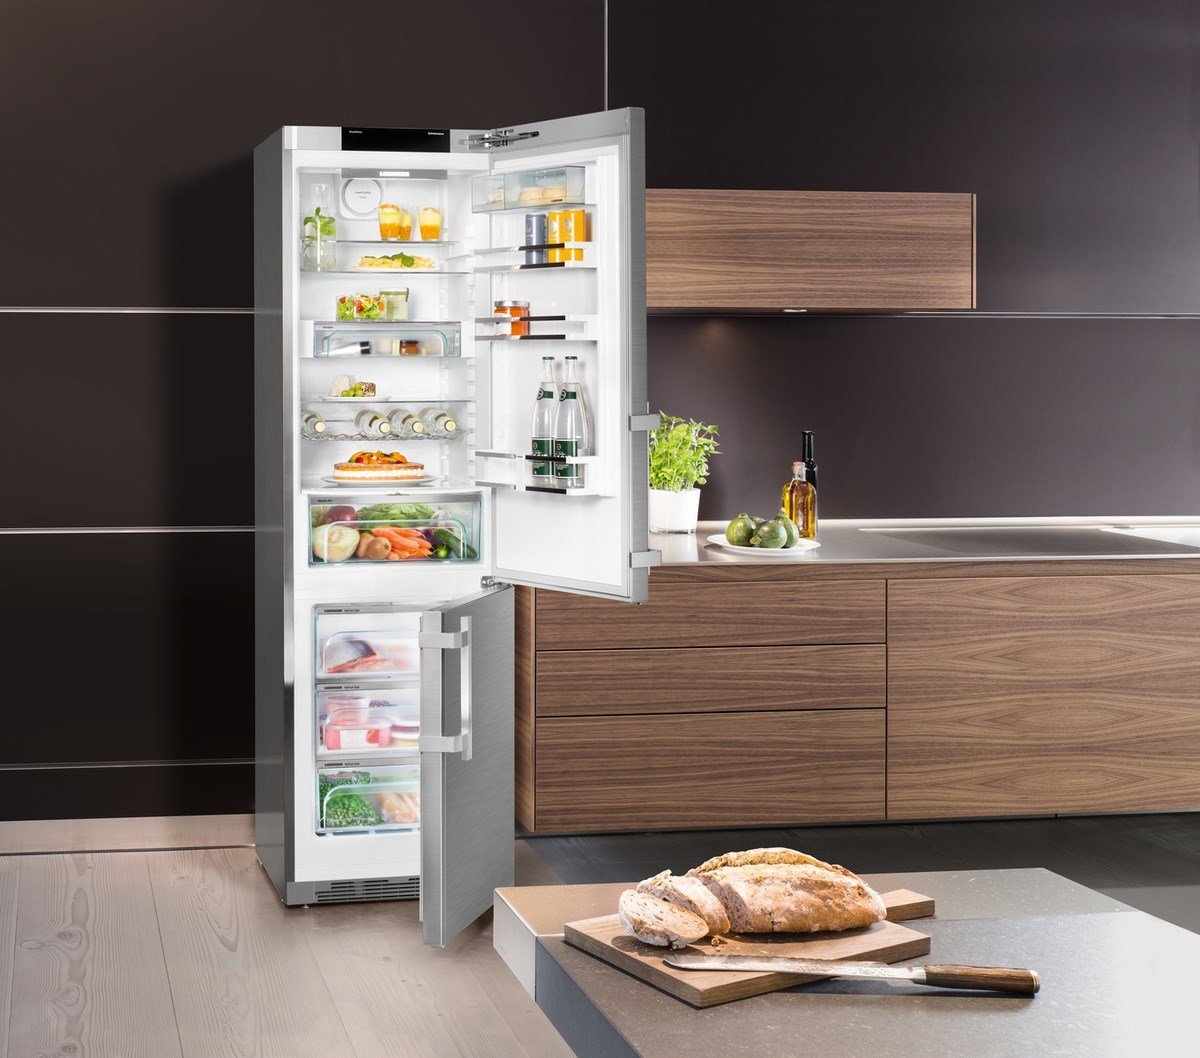 Superb Liebherr Cbnpes 4858 Freestanding 344L A + + + Stainless Steel Fridge And  Freezer   Freestanding Fridge Freezer, Stainless Steel, Right, Touch, TFT,  ... Amazing Ideas